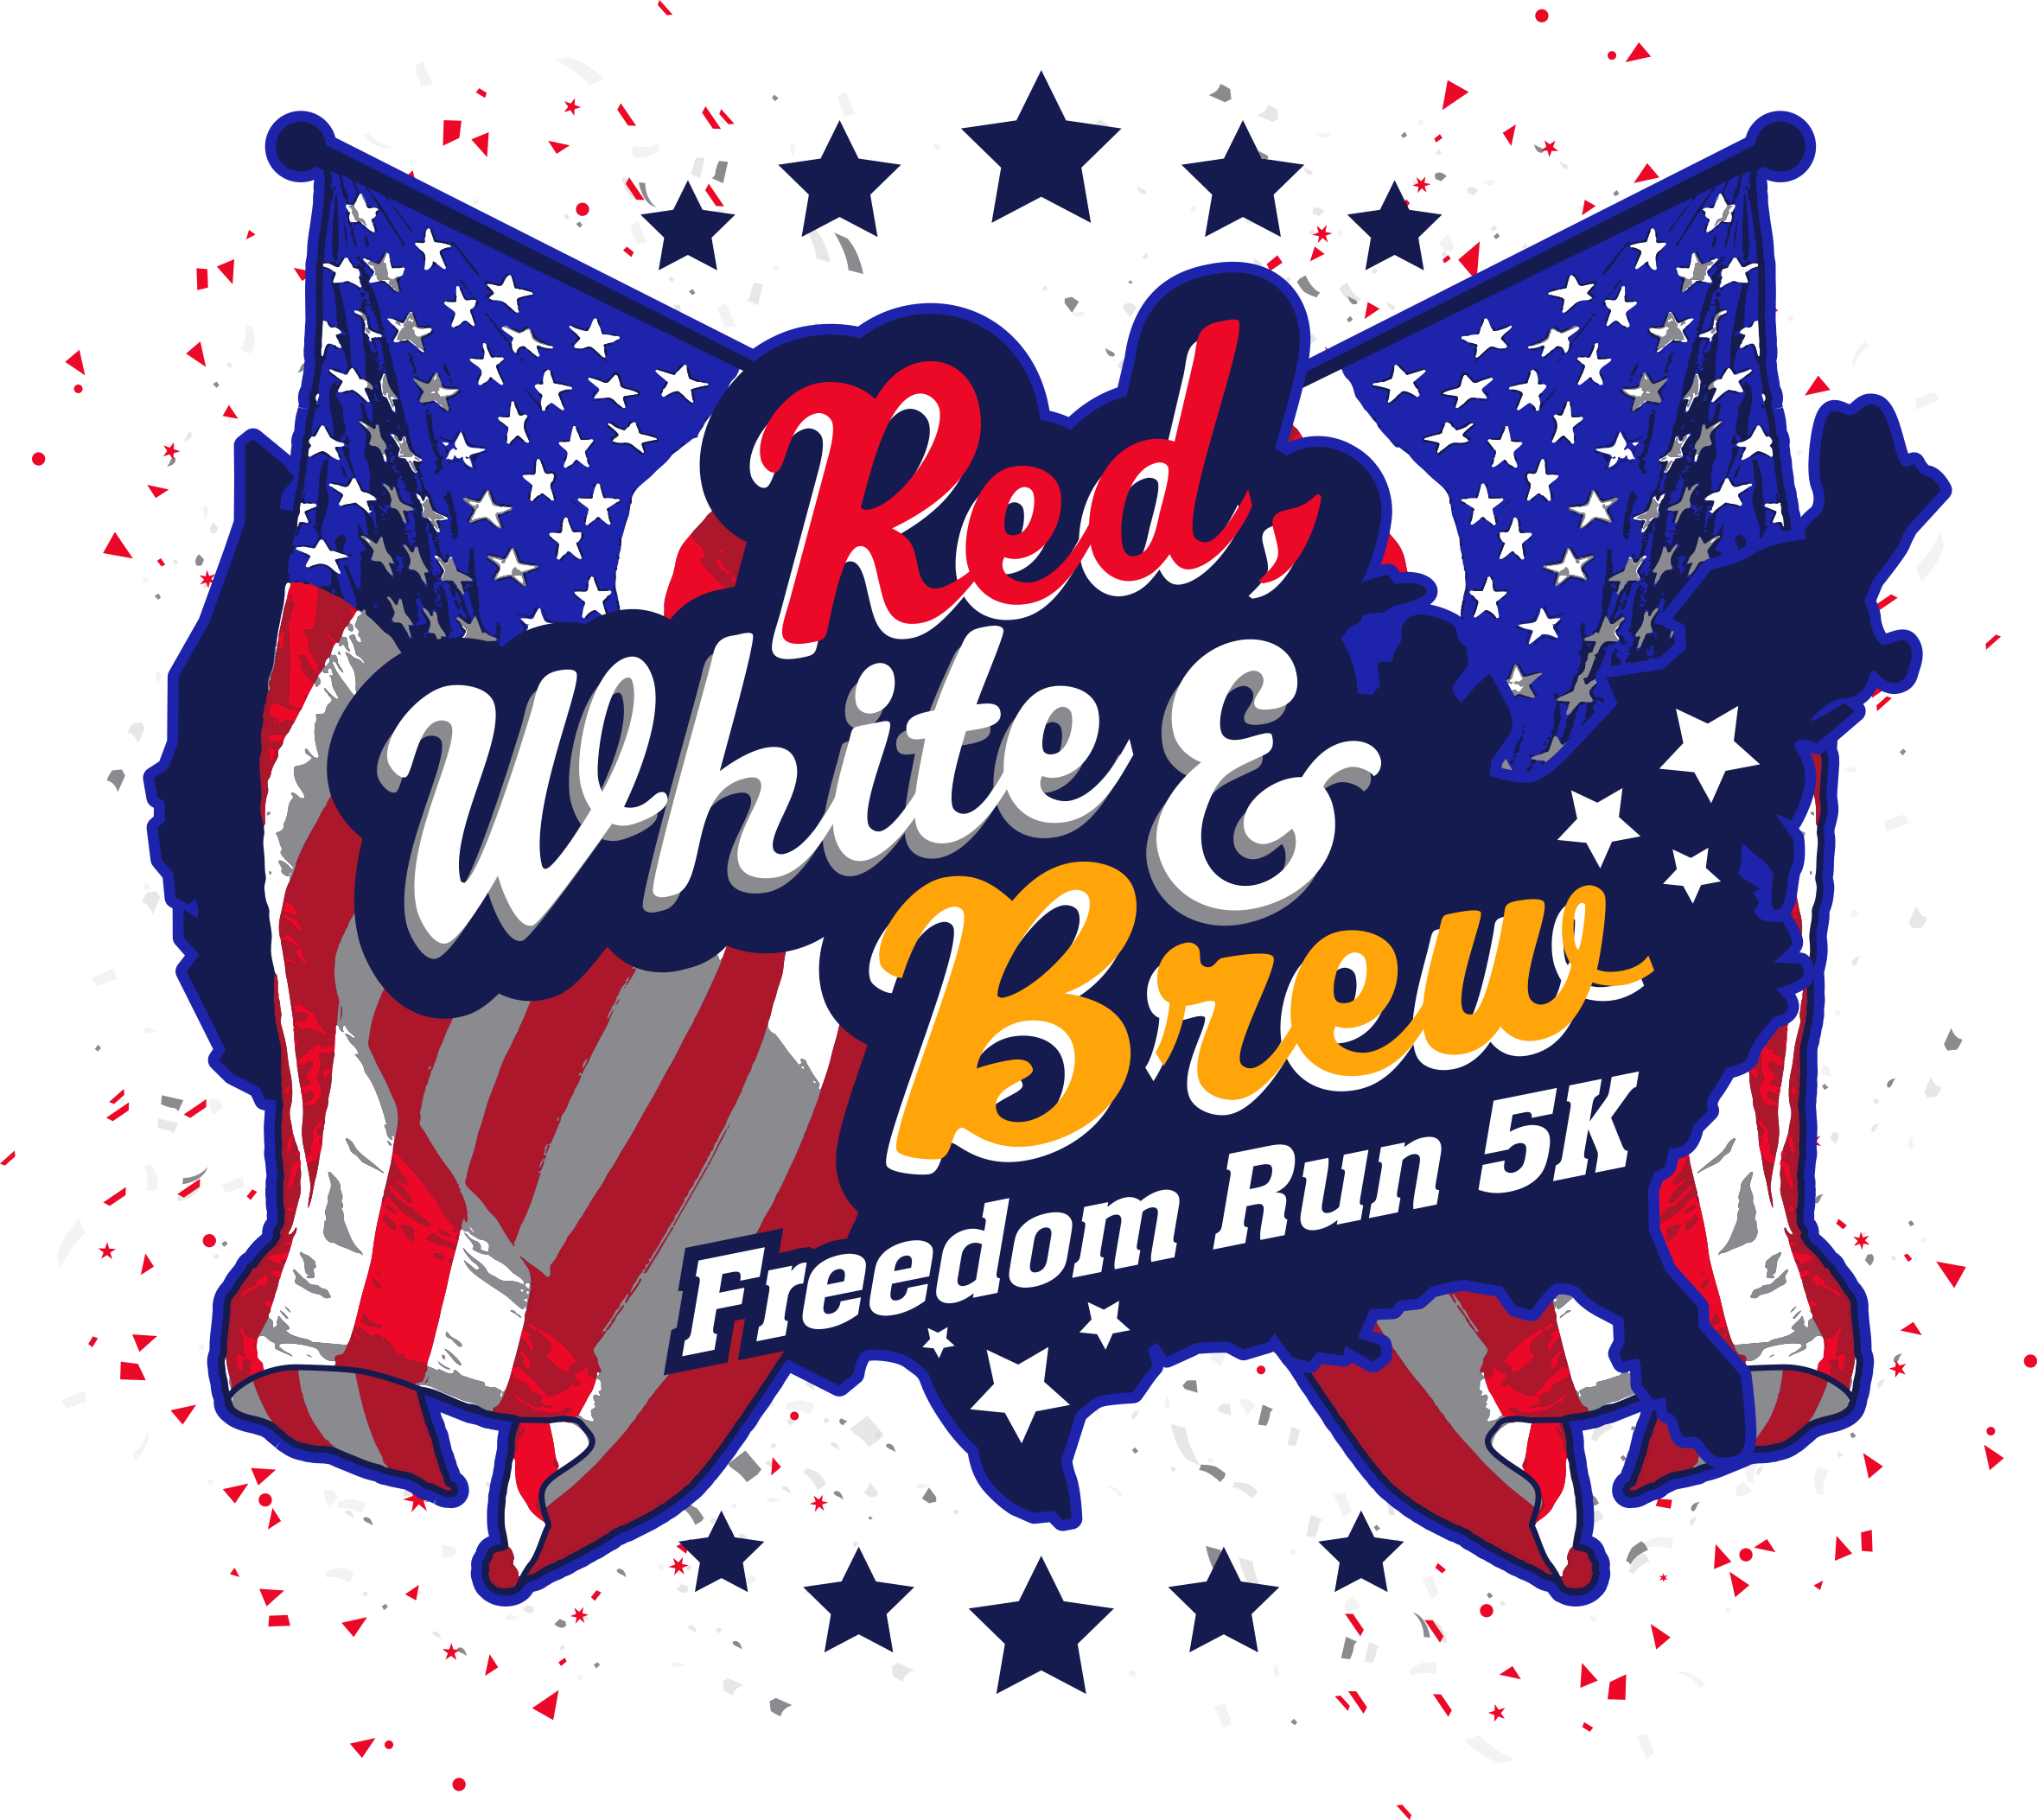 RED, WHITE & BREW FREEDOM RUN 5K JACKSONVILLE